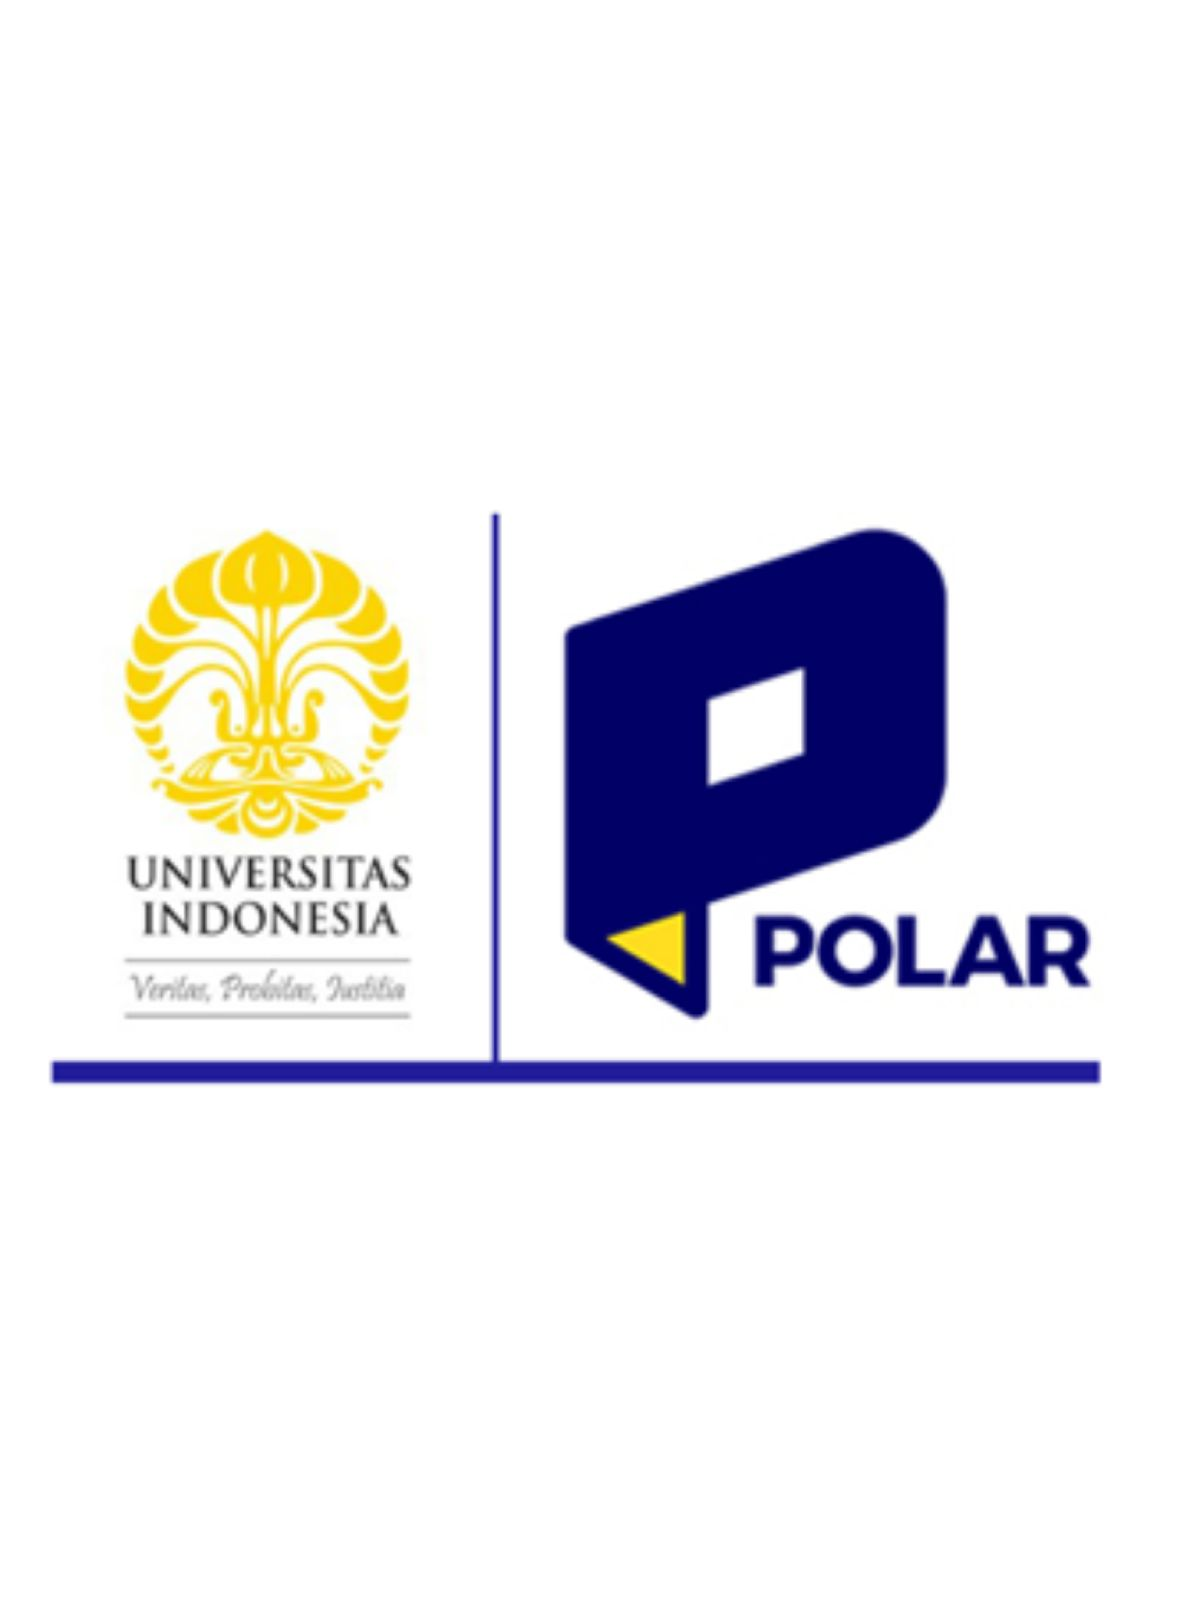 POLAR-Universitas Indonesia